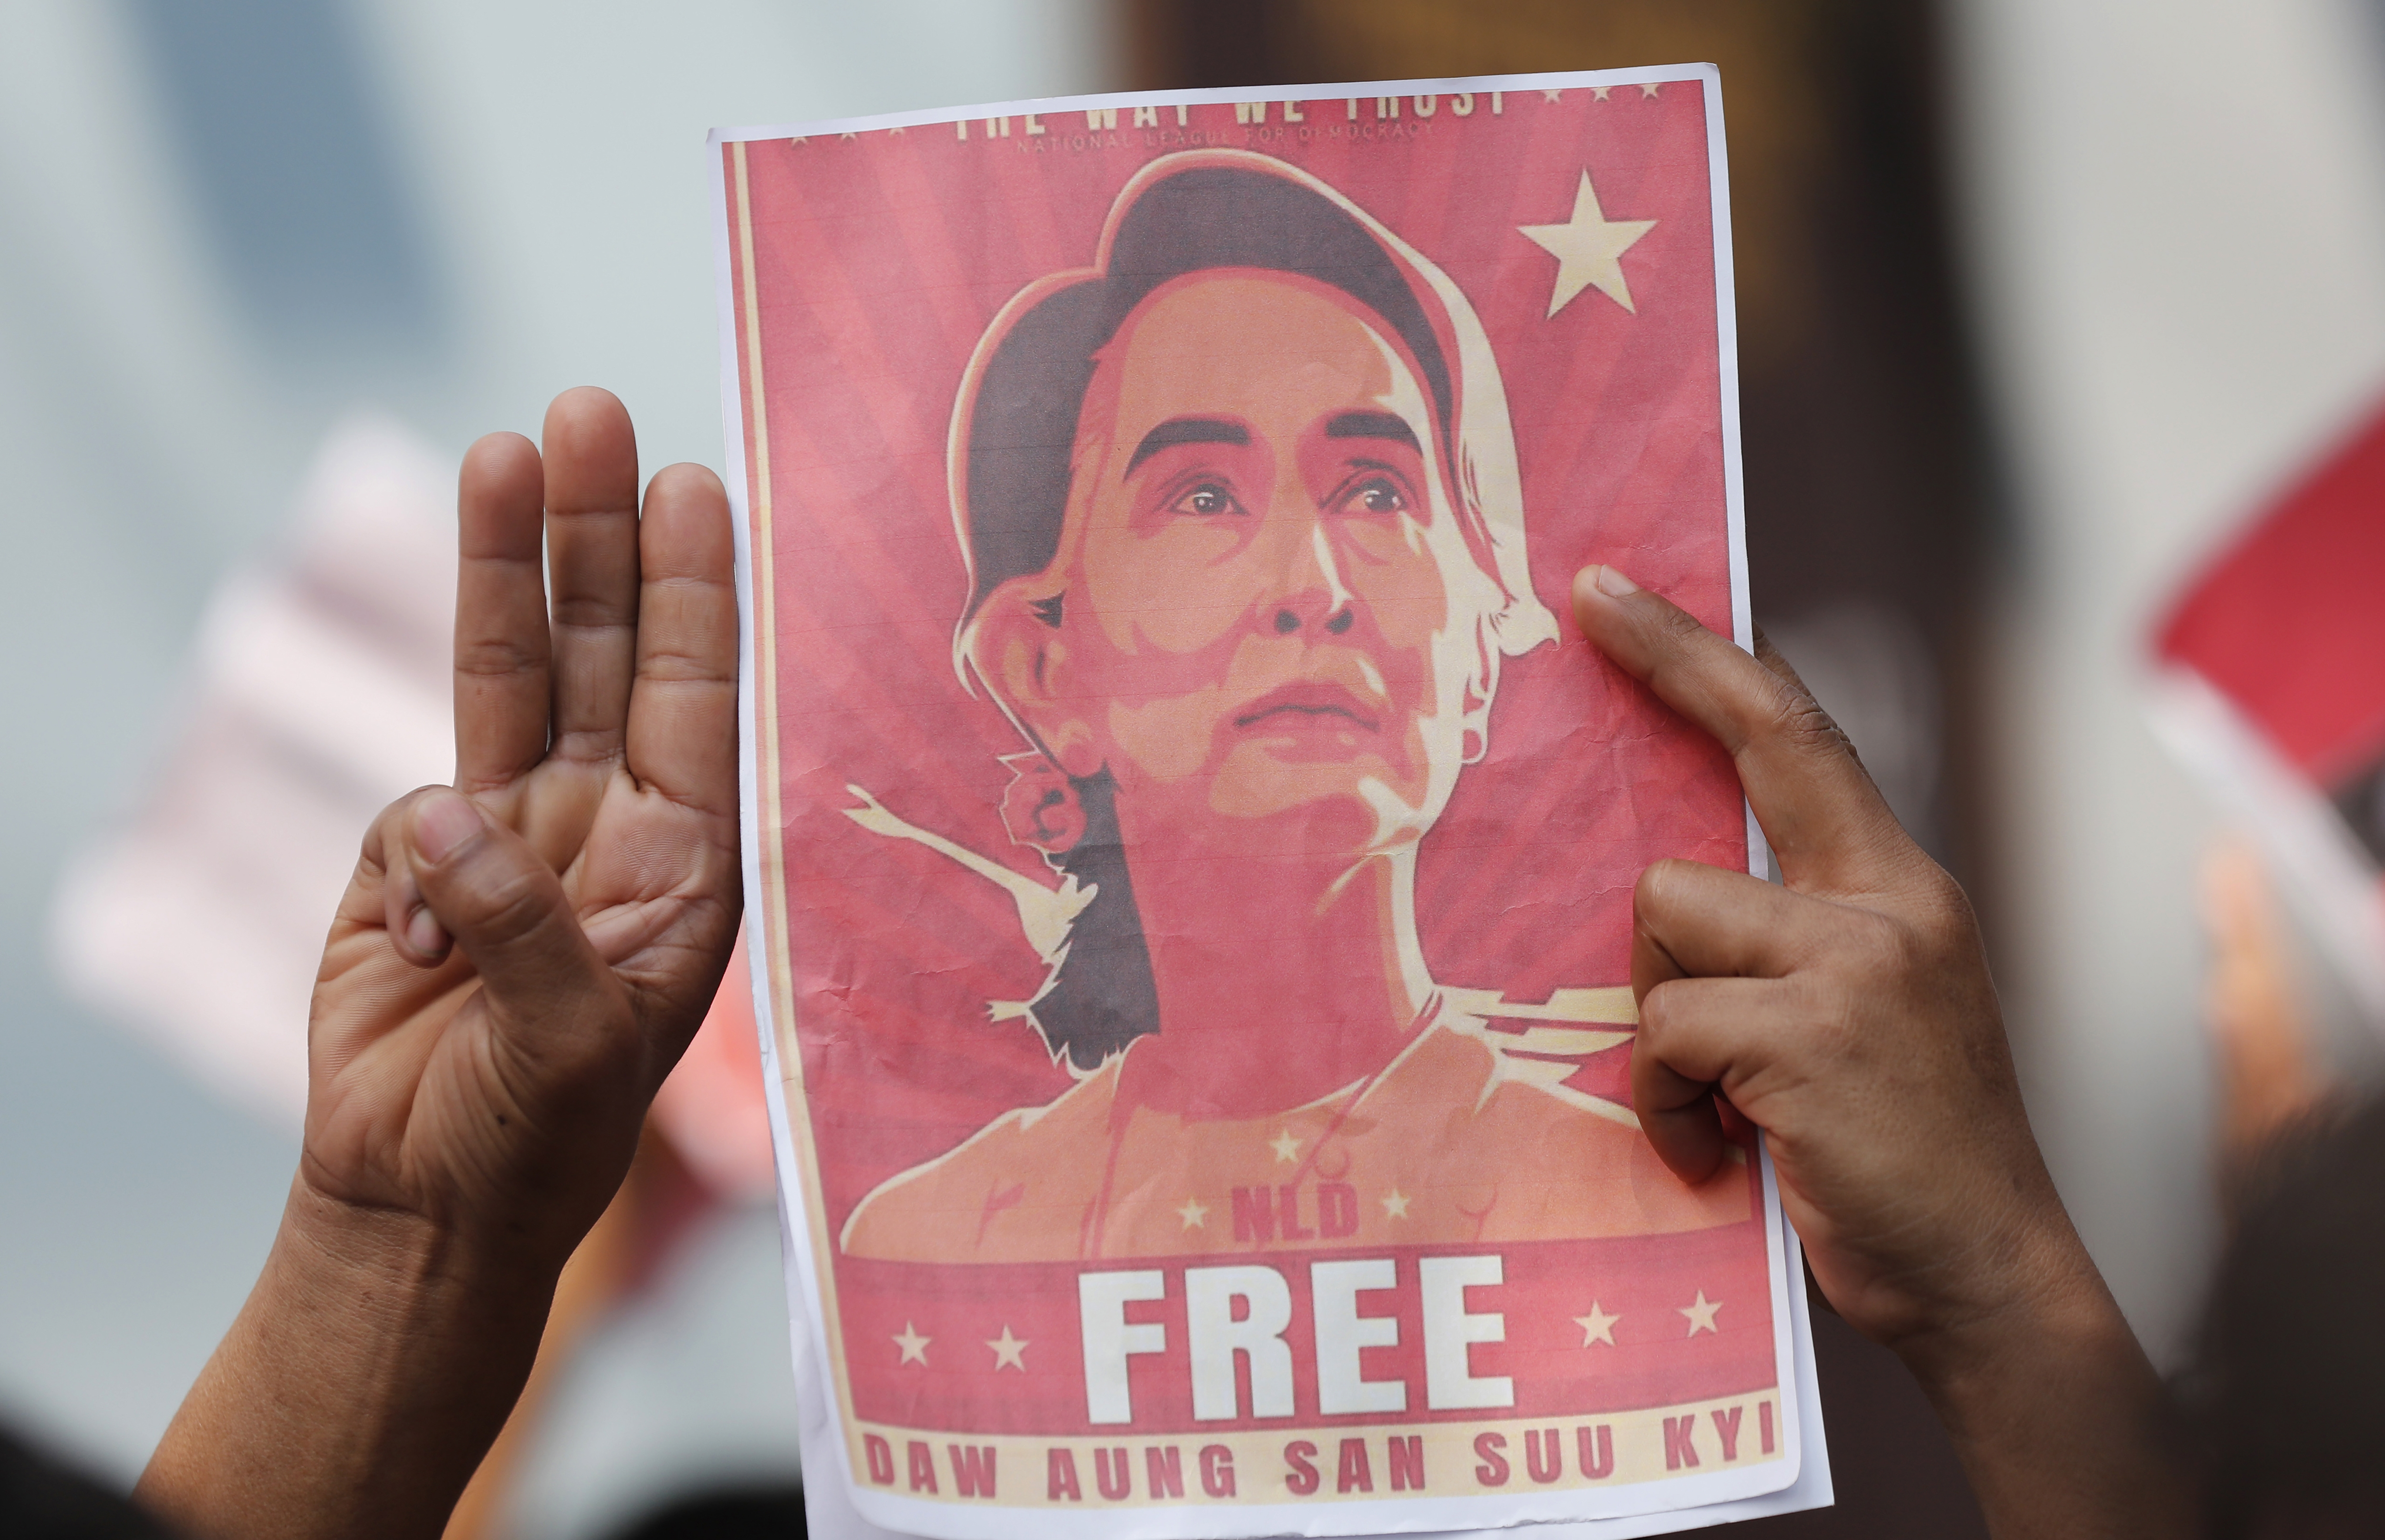 In this Feb. 8 photo, a Myanmar national in Bangkok, Thailand, holds a poster protesting the detention of Myanmar leader Aung San Suu Kyi.